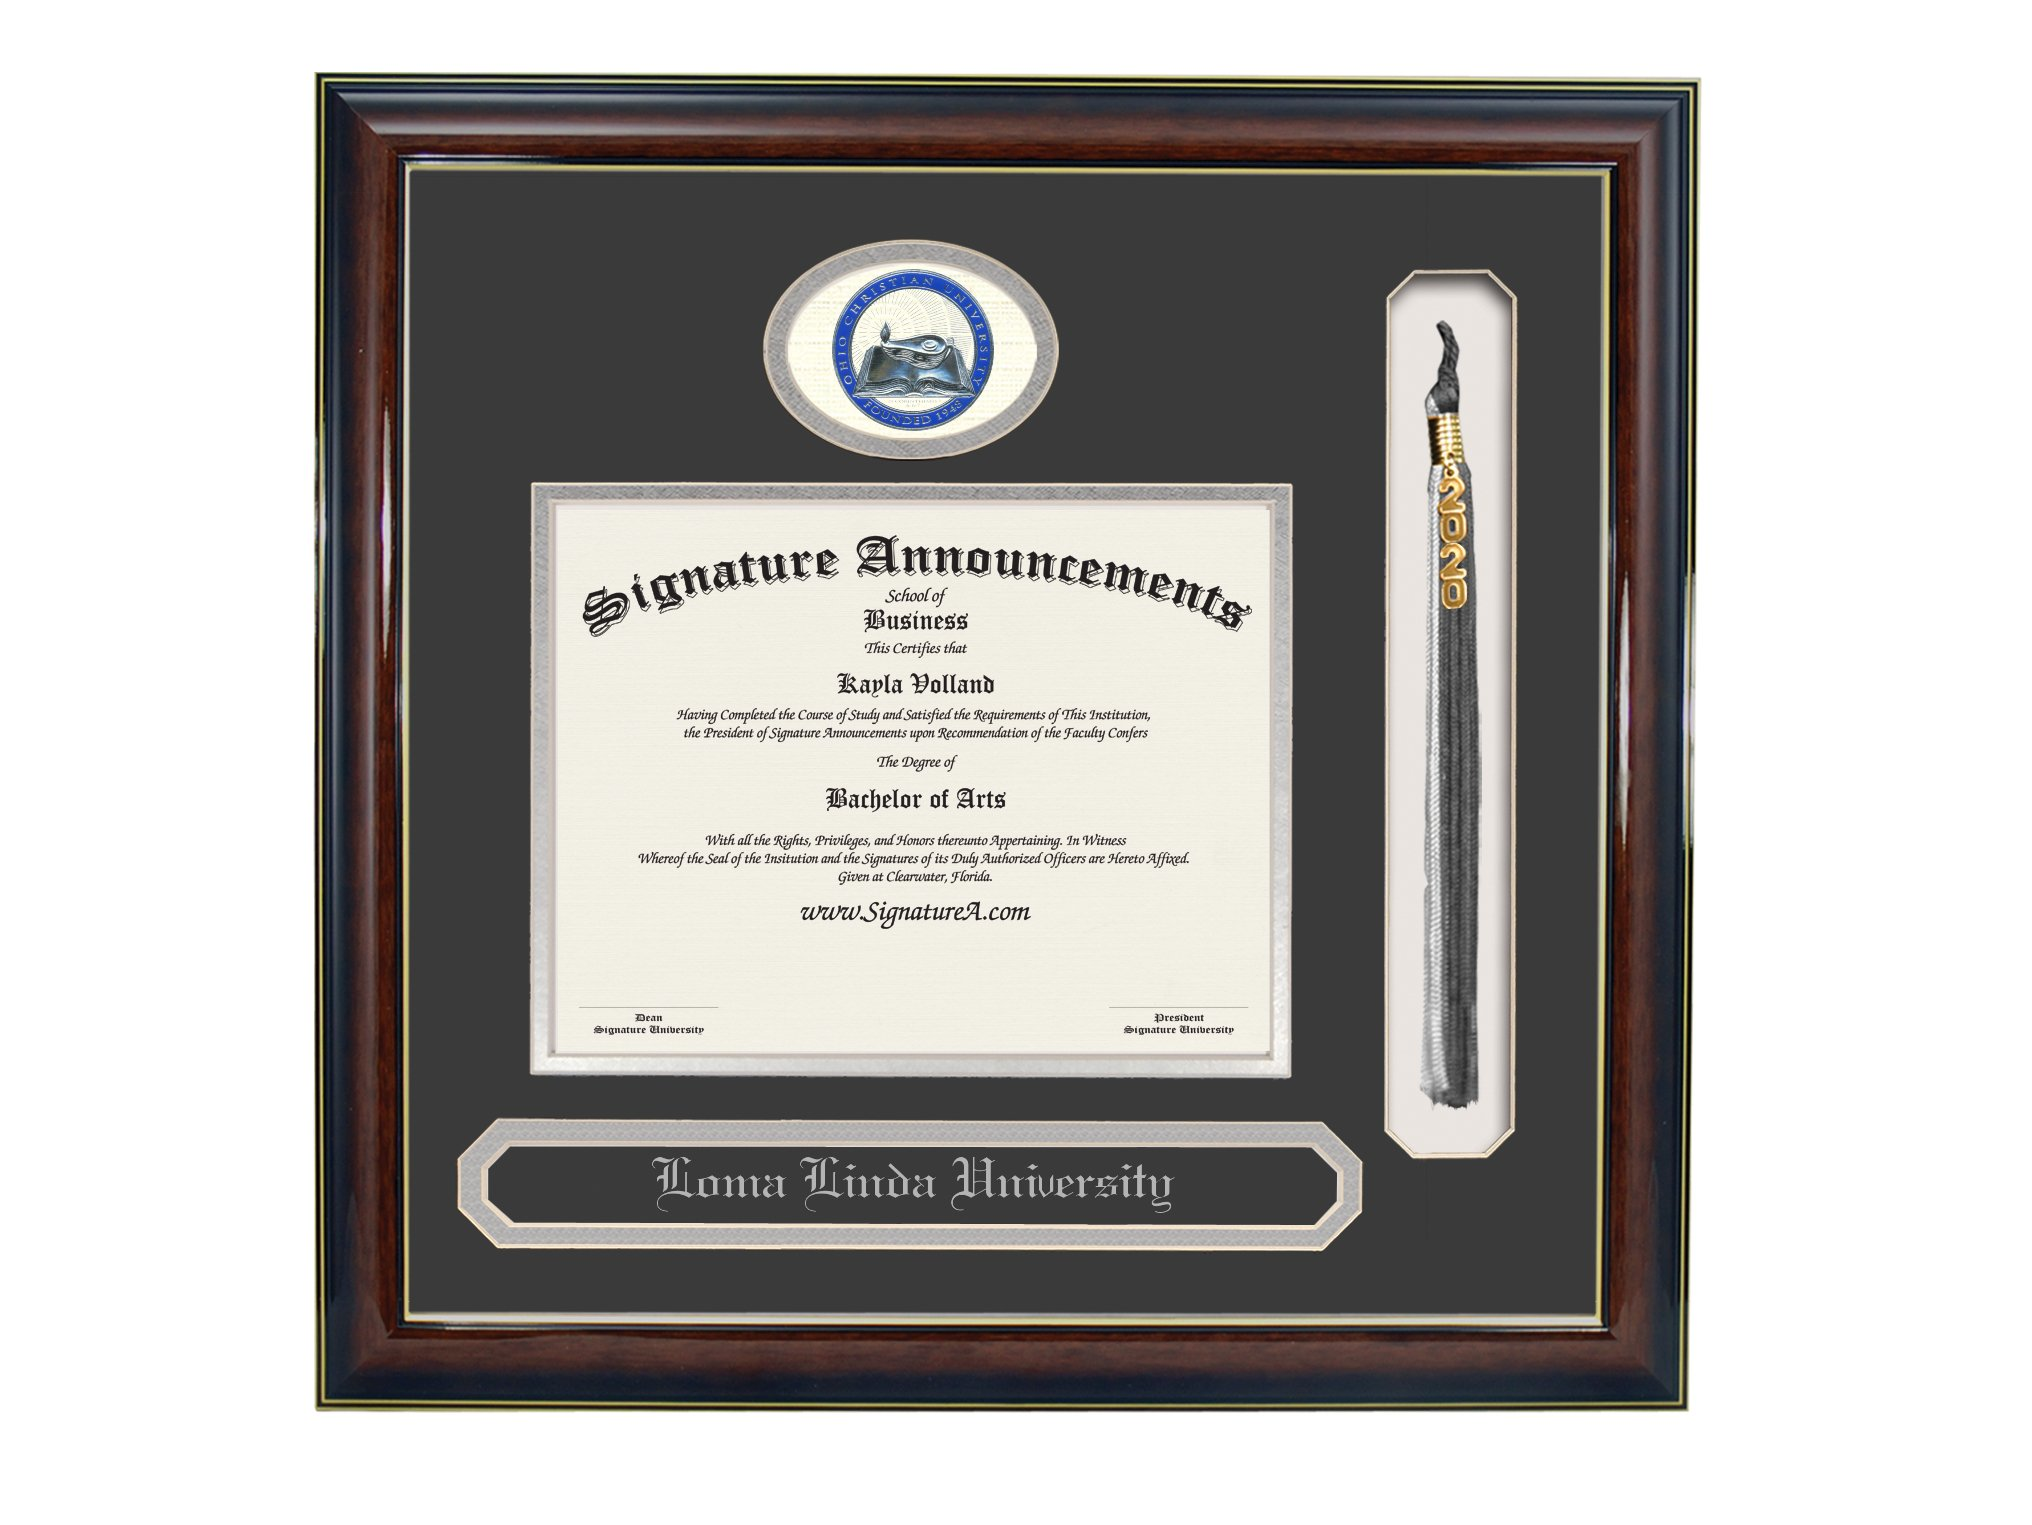 Signature Announcements Ohio-Christian-University Undergraduate, Graduate/Professional/Doctor Sculpted Foil Seal, Name & Tassel Diploma Frame, 16'' x 16'', Gold Accent Gloss Mahogany